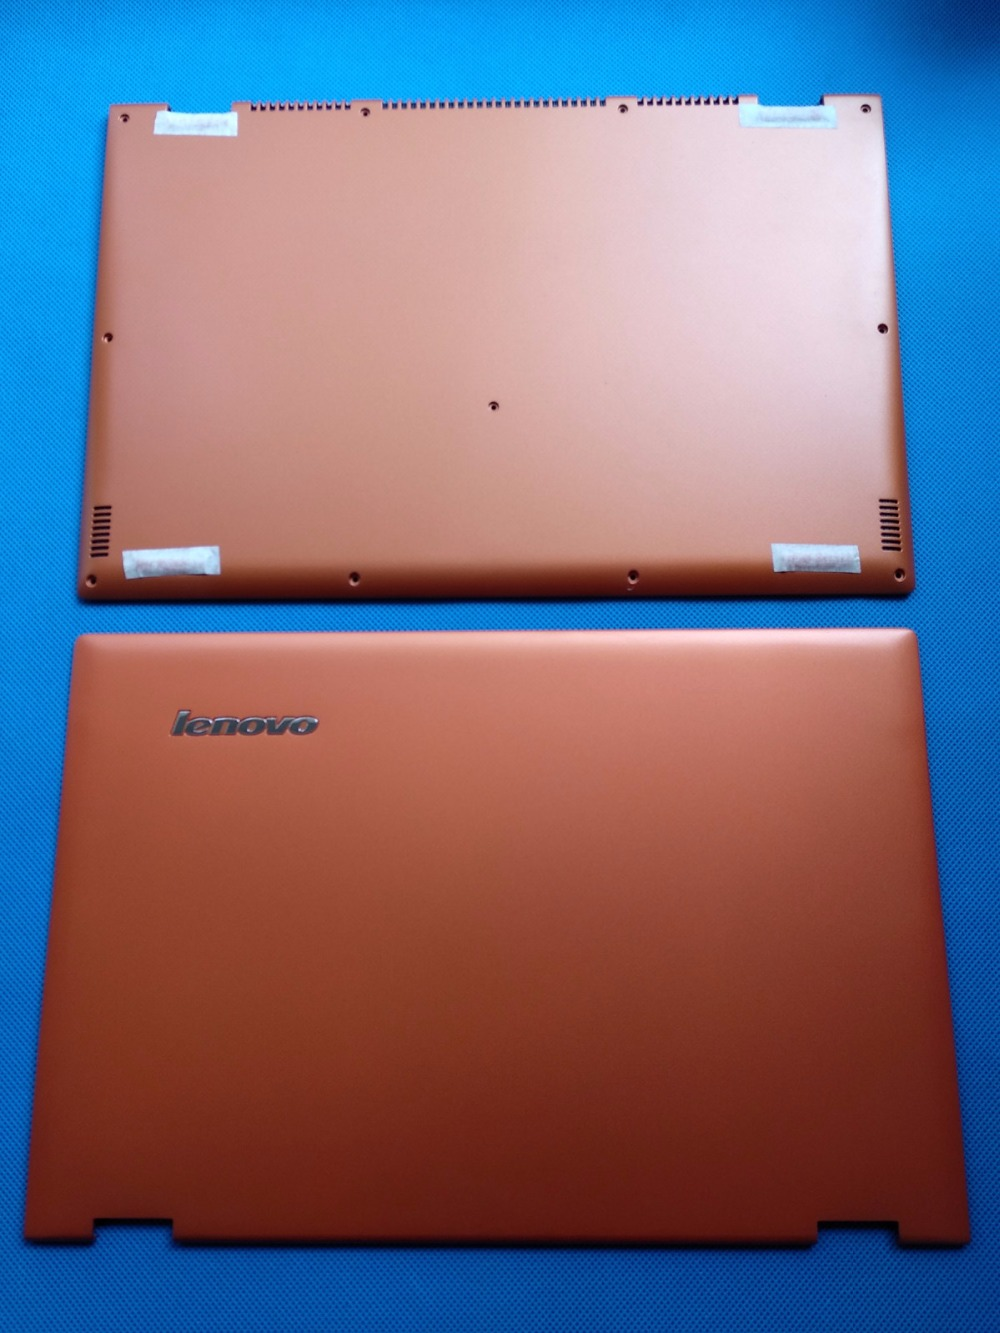 New Original Lenovo Ideapad Yoga 2 Pro 13 LCD Back Rear Lid Cover+ Base Cover Bottom Lower Case AM0S9000200 AM0S9000300 Orange case cover for lenovo ideapad yoga 2 pro 13 13 base bottom cover laptop replace cover am0s9000200